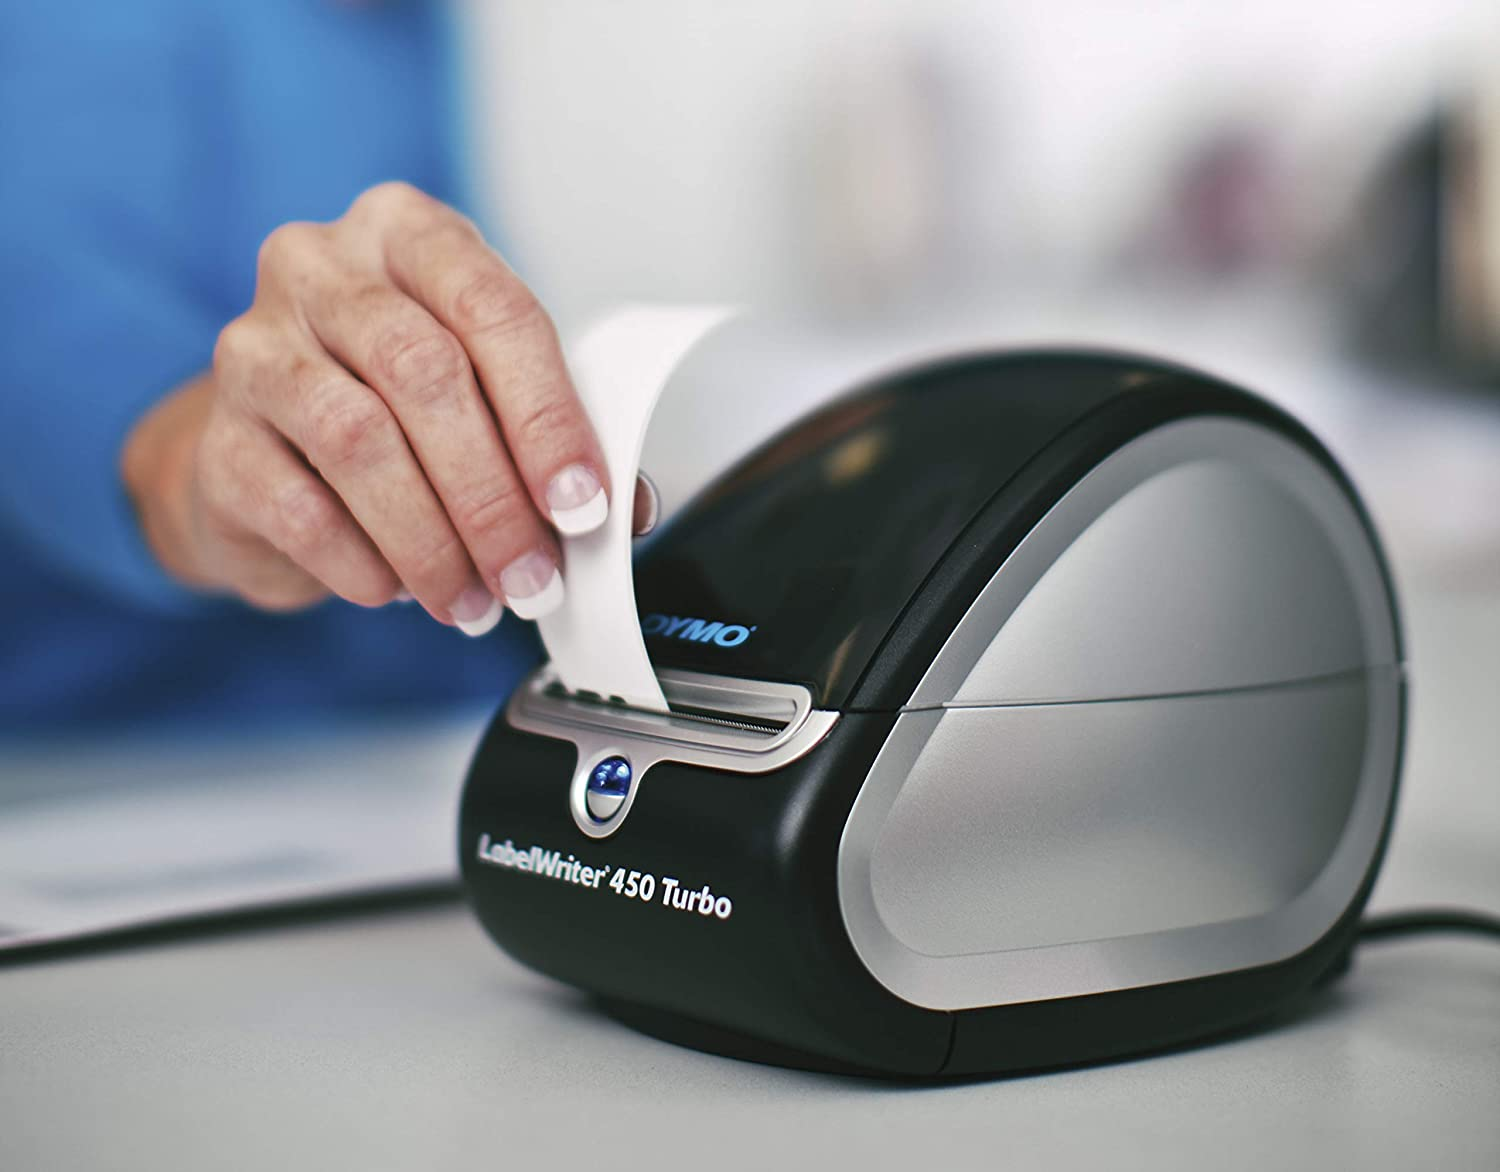 DYMO Label Printer | LabelWriter 450 Turbo Direct Thermal Label Printer, Fast Printing, Great for Labeling, Filing, Mailing, Barcodes and More, Home & Office Organization: Office Products